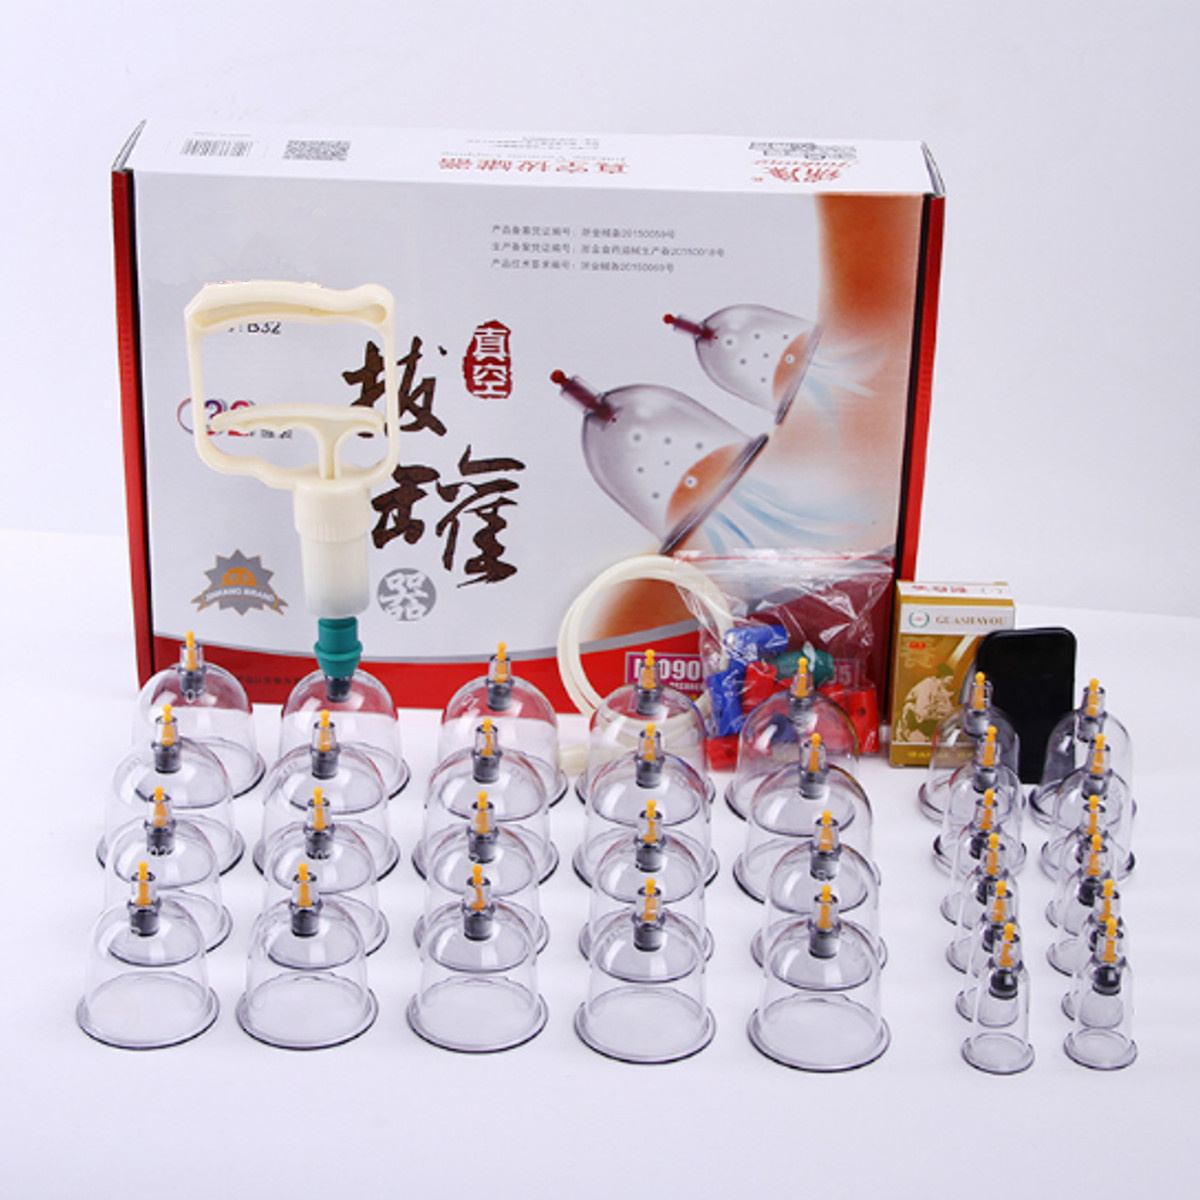 Vacuum-Cupping-Kit Cups Massager Curve-Suction-Pumps Chinese Cans 32 Relax Pull-Out title=